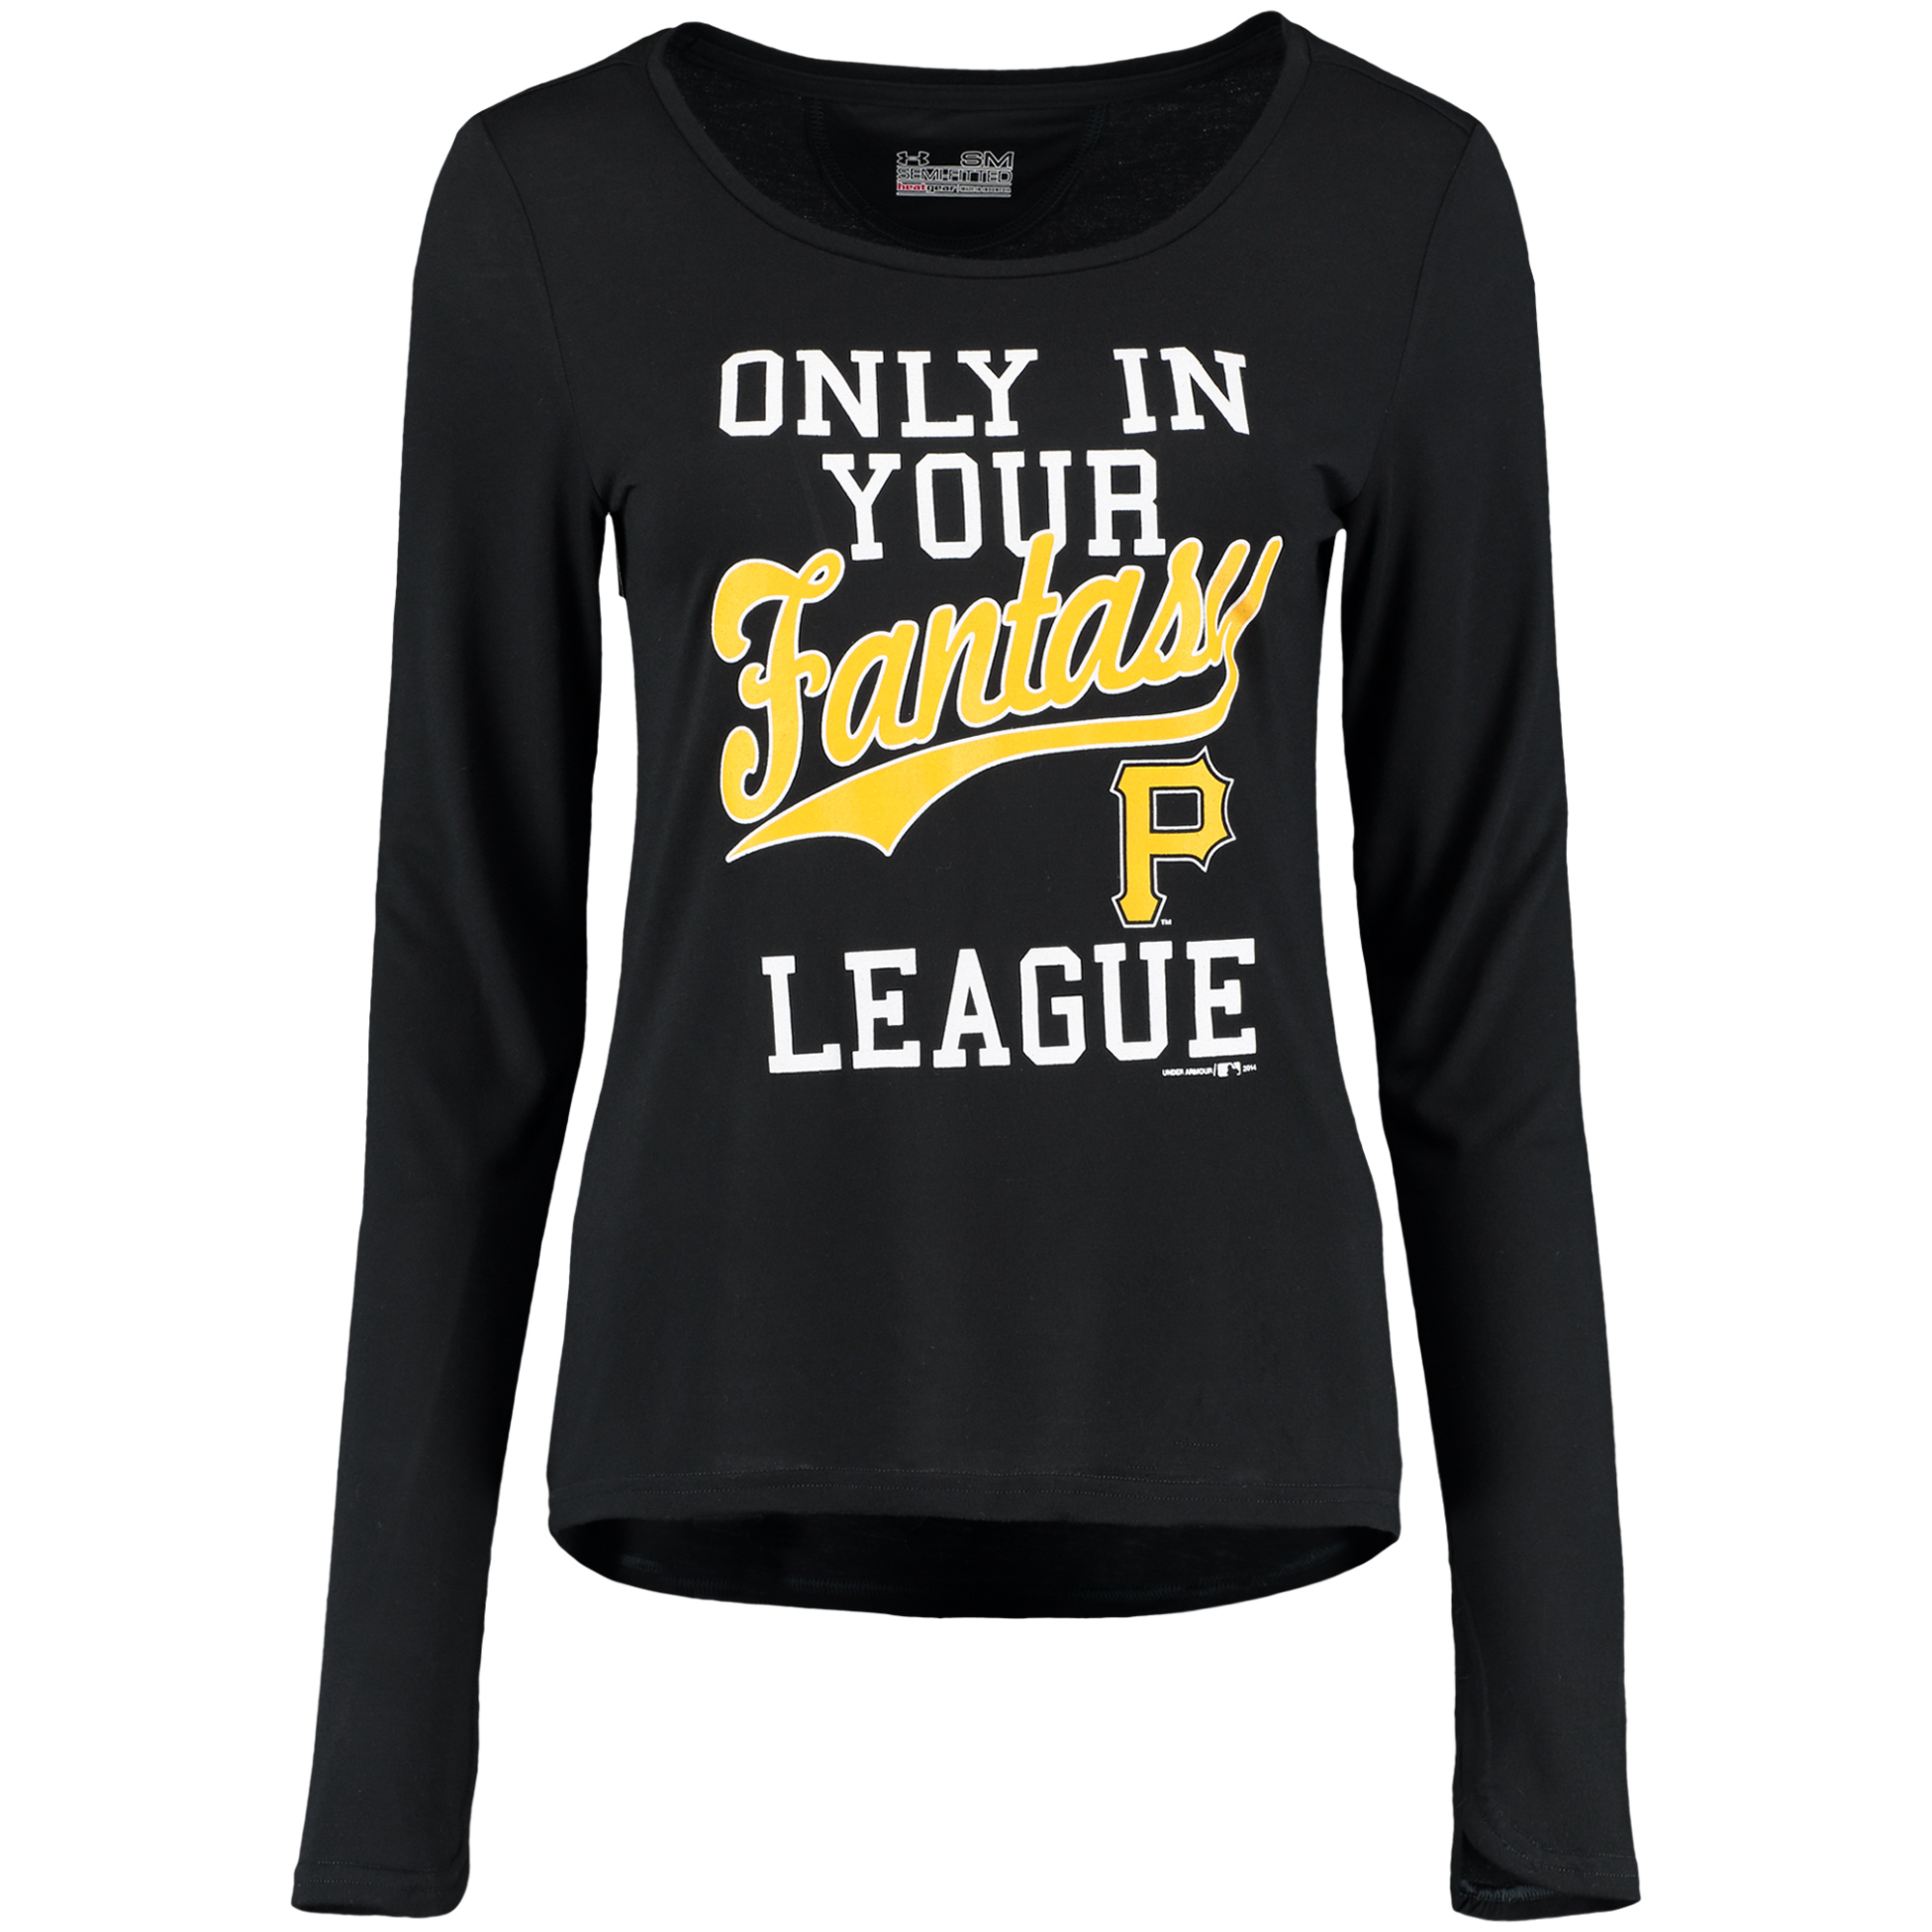 Pittsburgh Pirates Under Armour Women's Only in Your Fantasy Long Sleeve Performance T-Shirt - Black